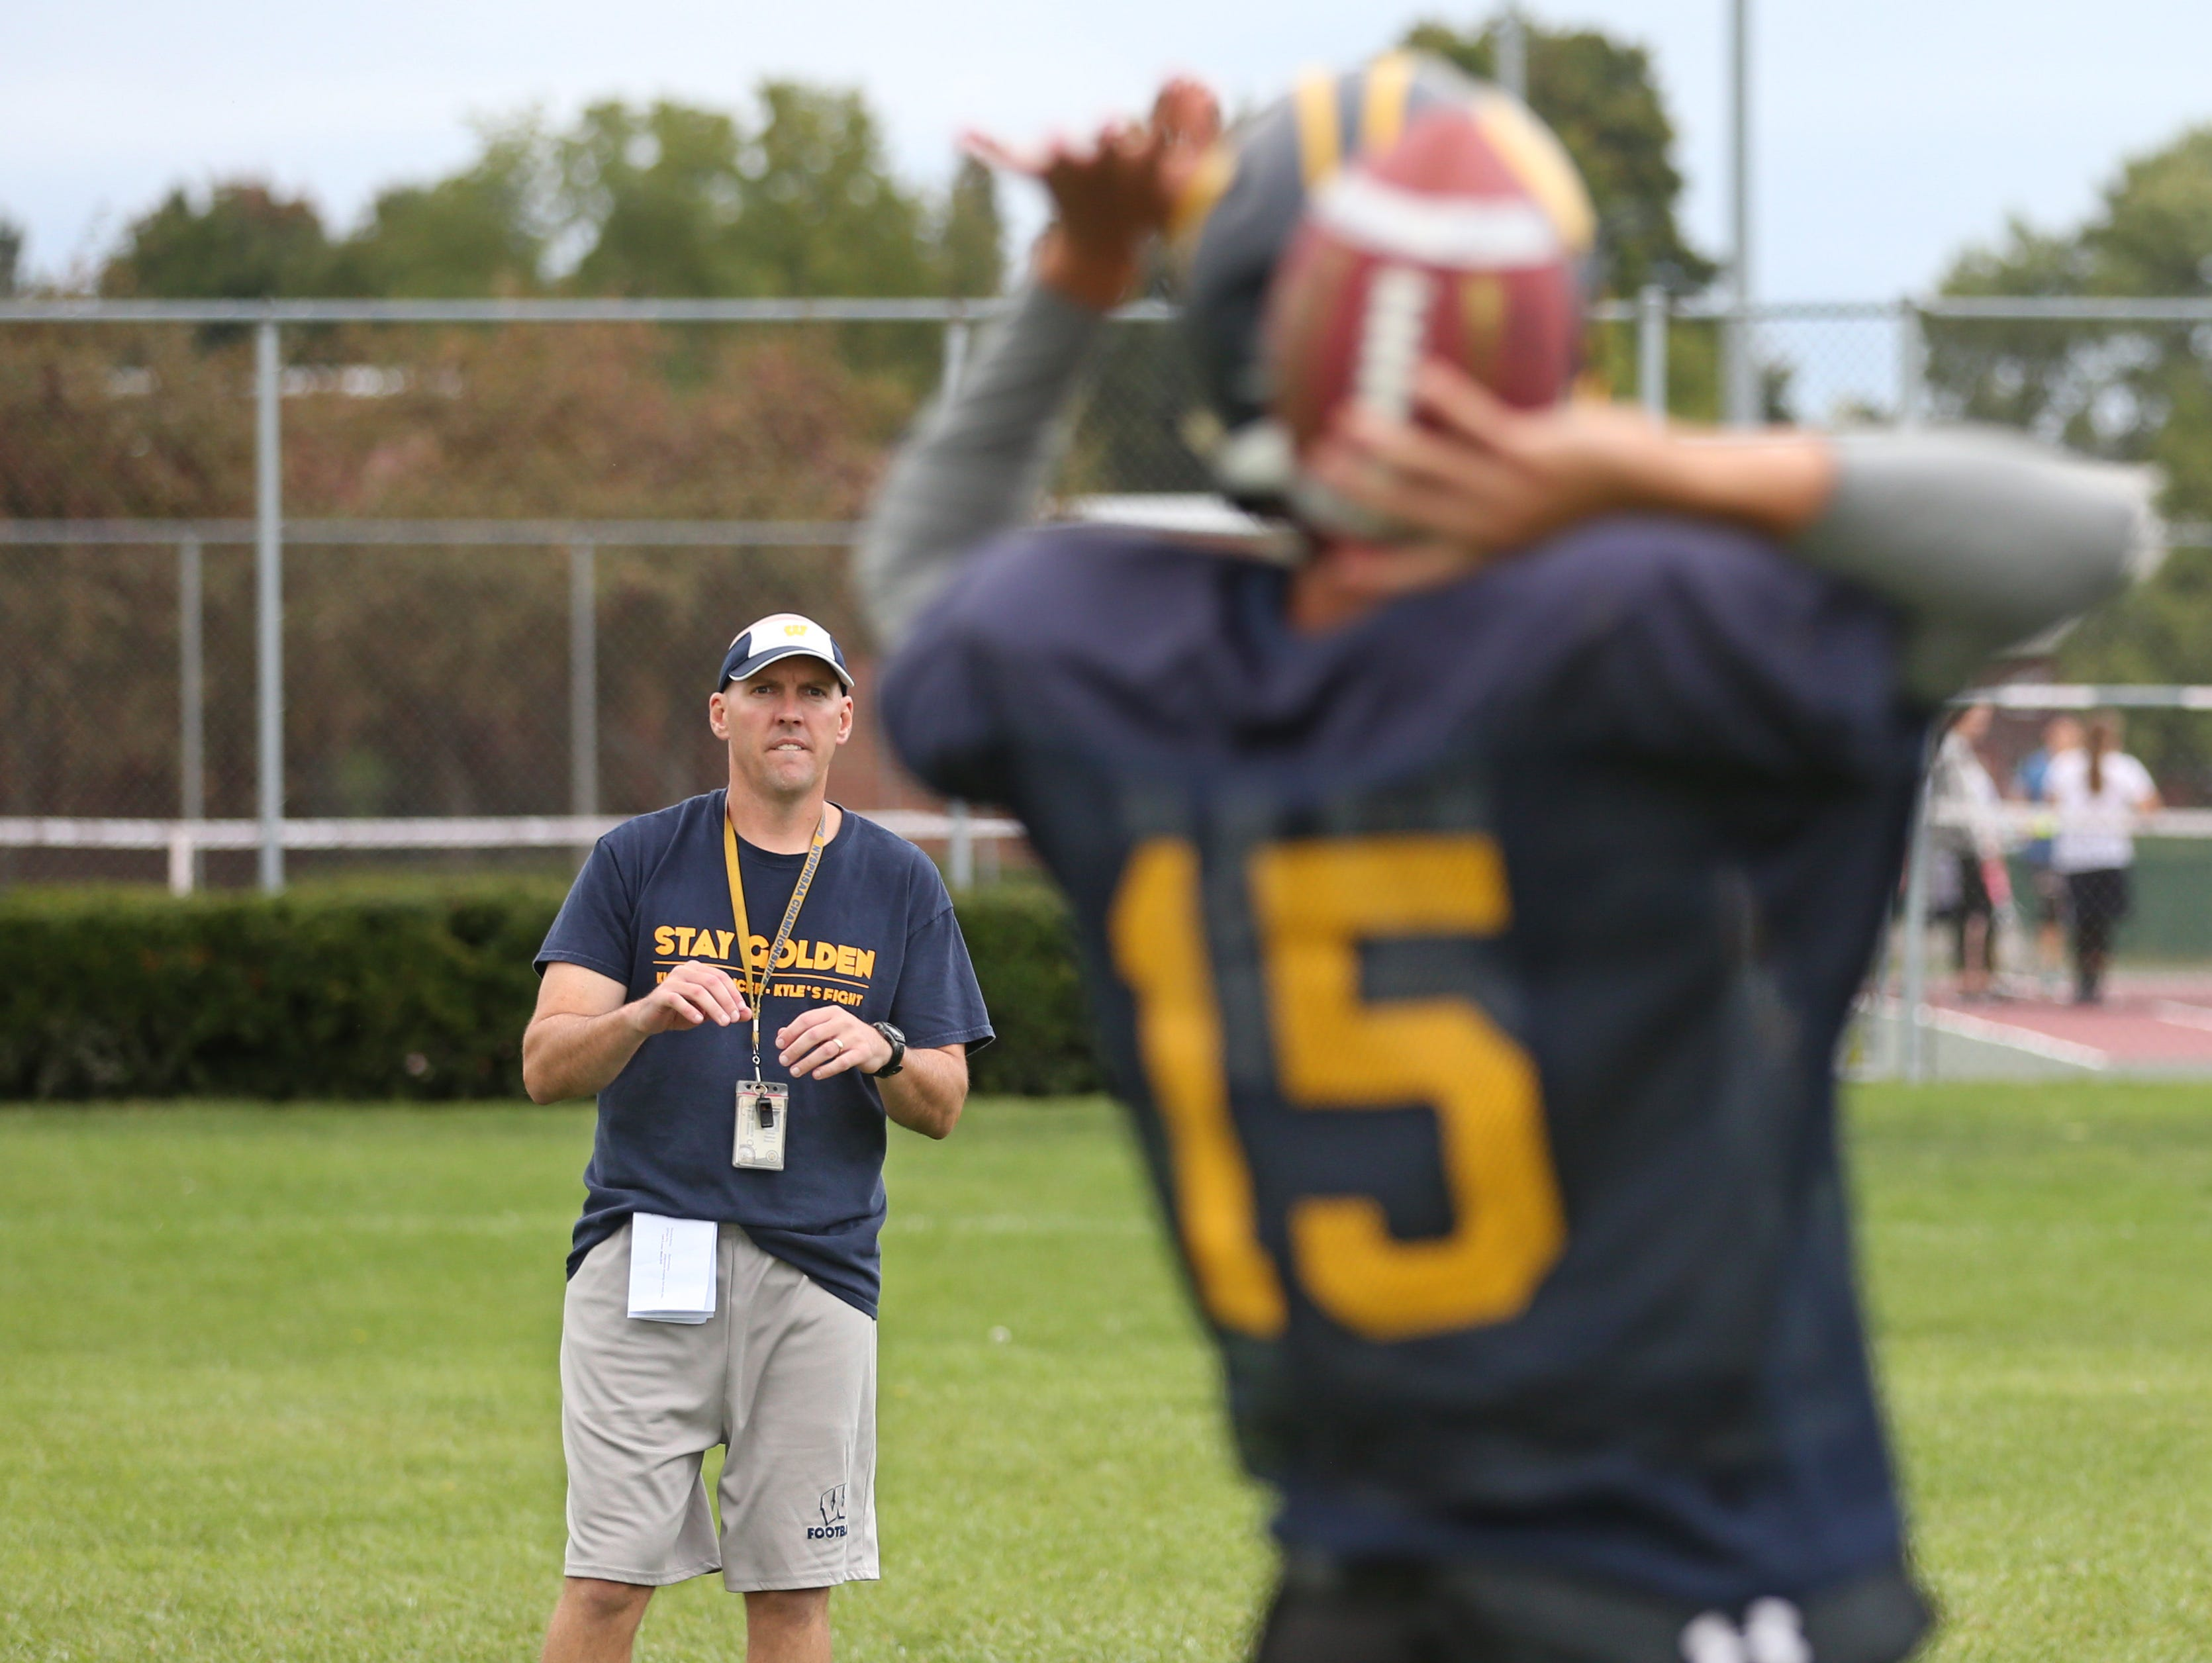 Wayne varsity football head coach David Marean warms up with his quarterback Braeden Zenelovic, during the team's practice at Wayne Central School in Ontario Monday, Sept. 28, 2015.